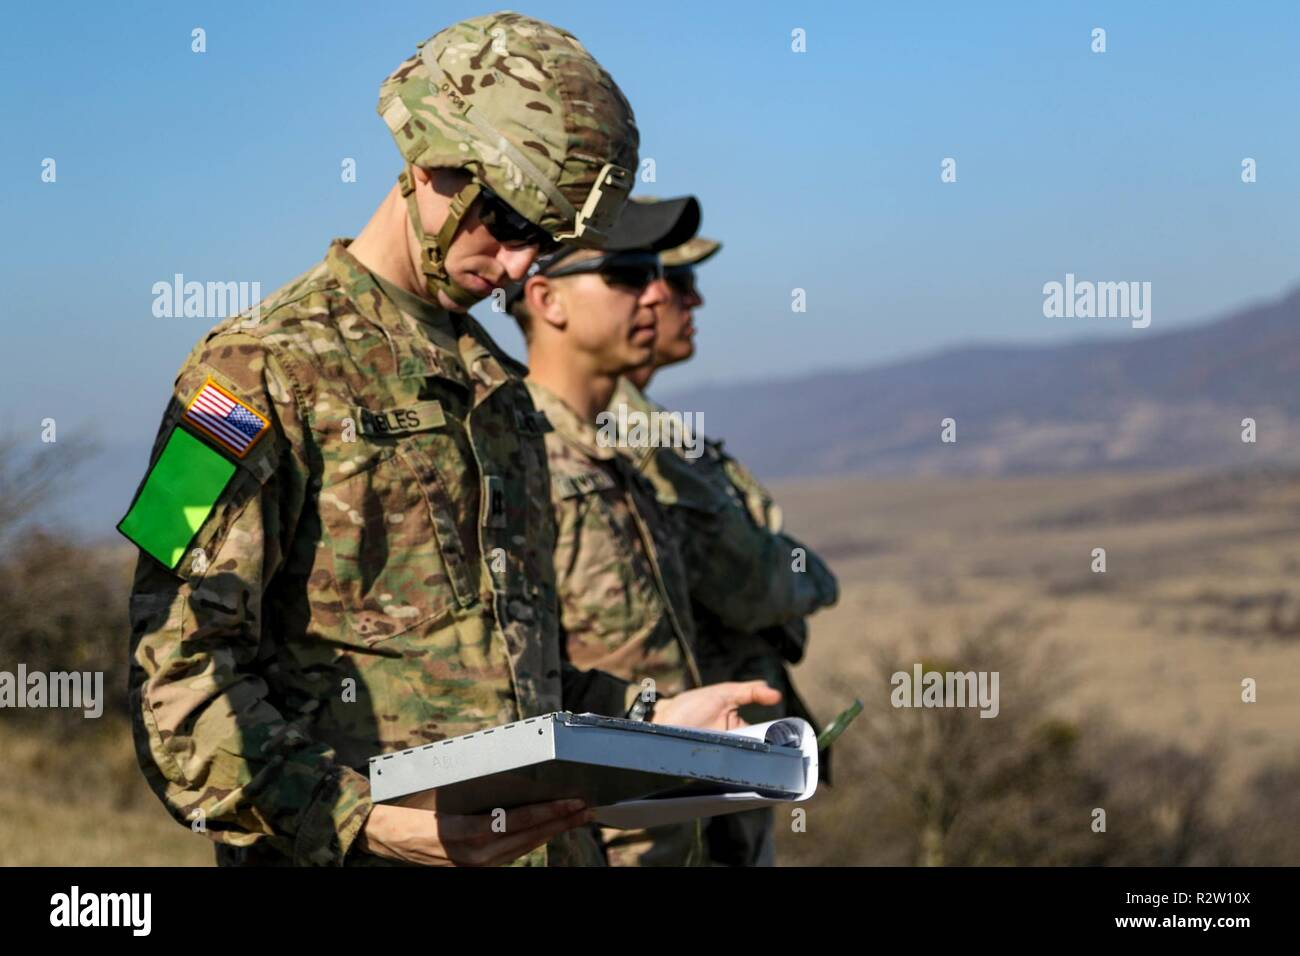 U.S. Army Cpt. Micah Ables, Sgt. Nathan Lockwood, and 1st Lt. Kendell Williams with 2nd Battalion, 8th Cavalry Regiment, 1st Armored Brigade Combat Team, 1st Cavalry Division, conduct an area reconnaissance at Vaziani Training Area, Georgia on Nov. 11, 2018. 2-8 CAV assisted with the Georgia Defense Readiness Program - Training (GDRP-T) to improve interoperability with our allies and partners to increase lethality and maintain the advantage against future threats. - Stock Image